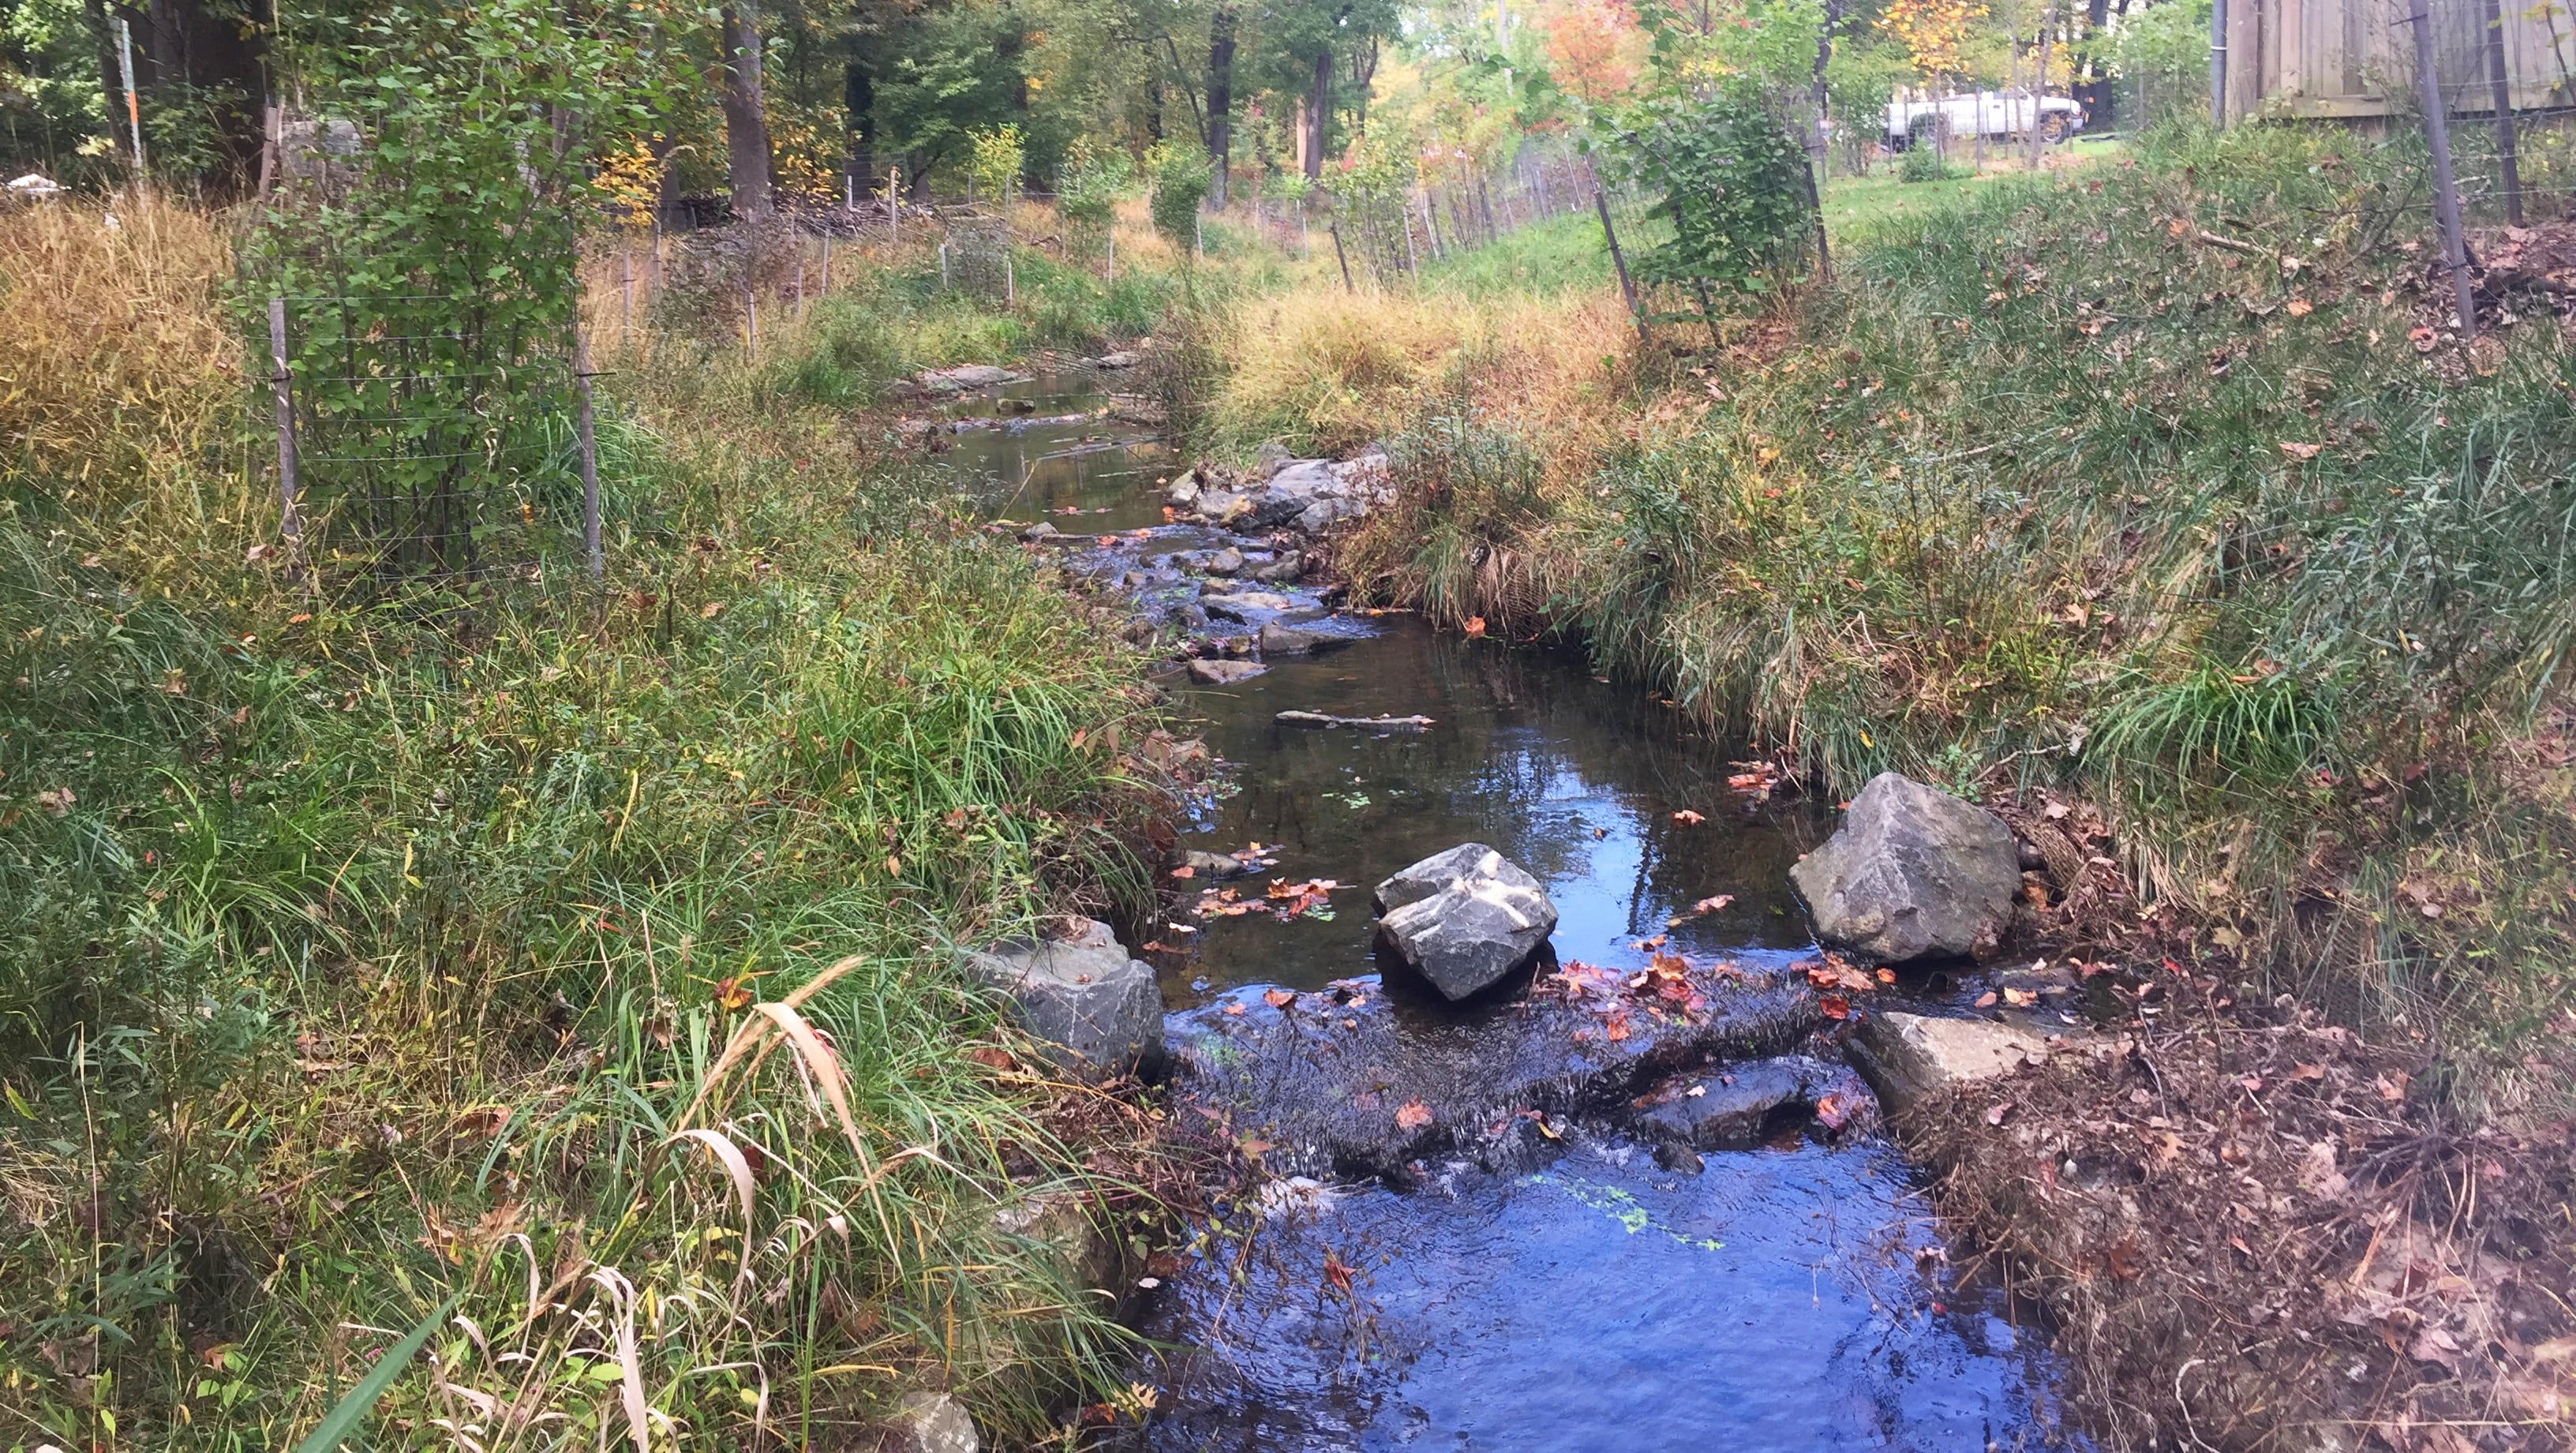 Hollywood Branch: A neighborhood stream restored